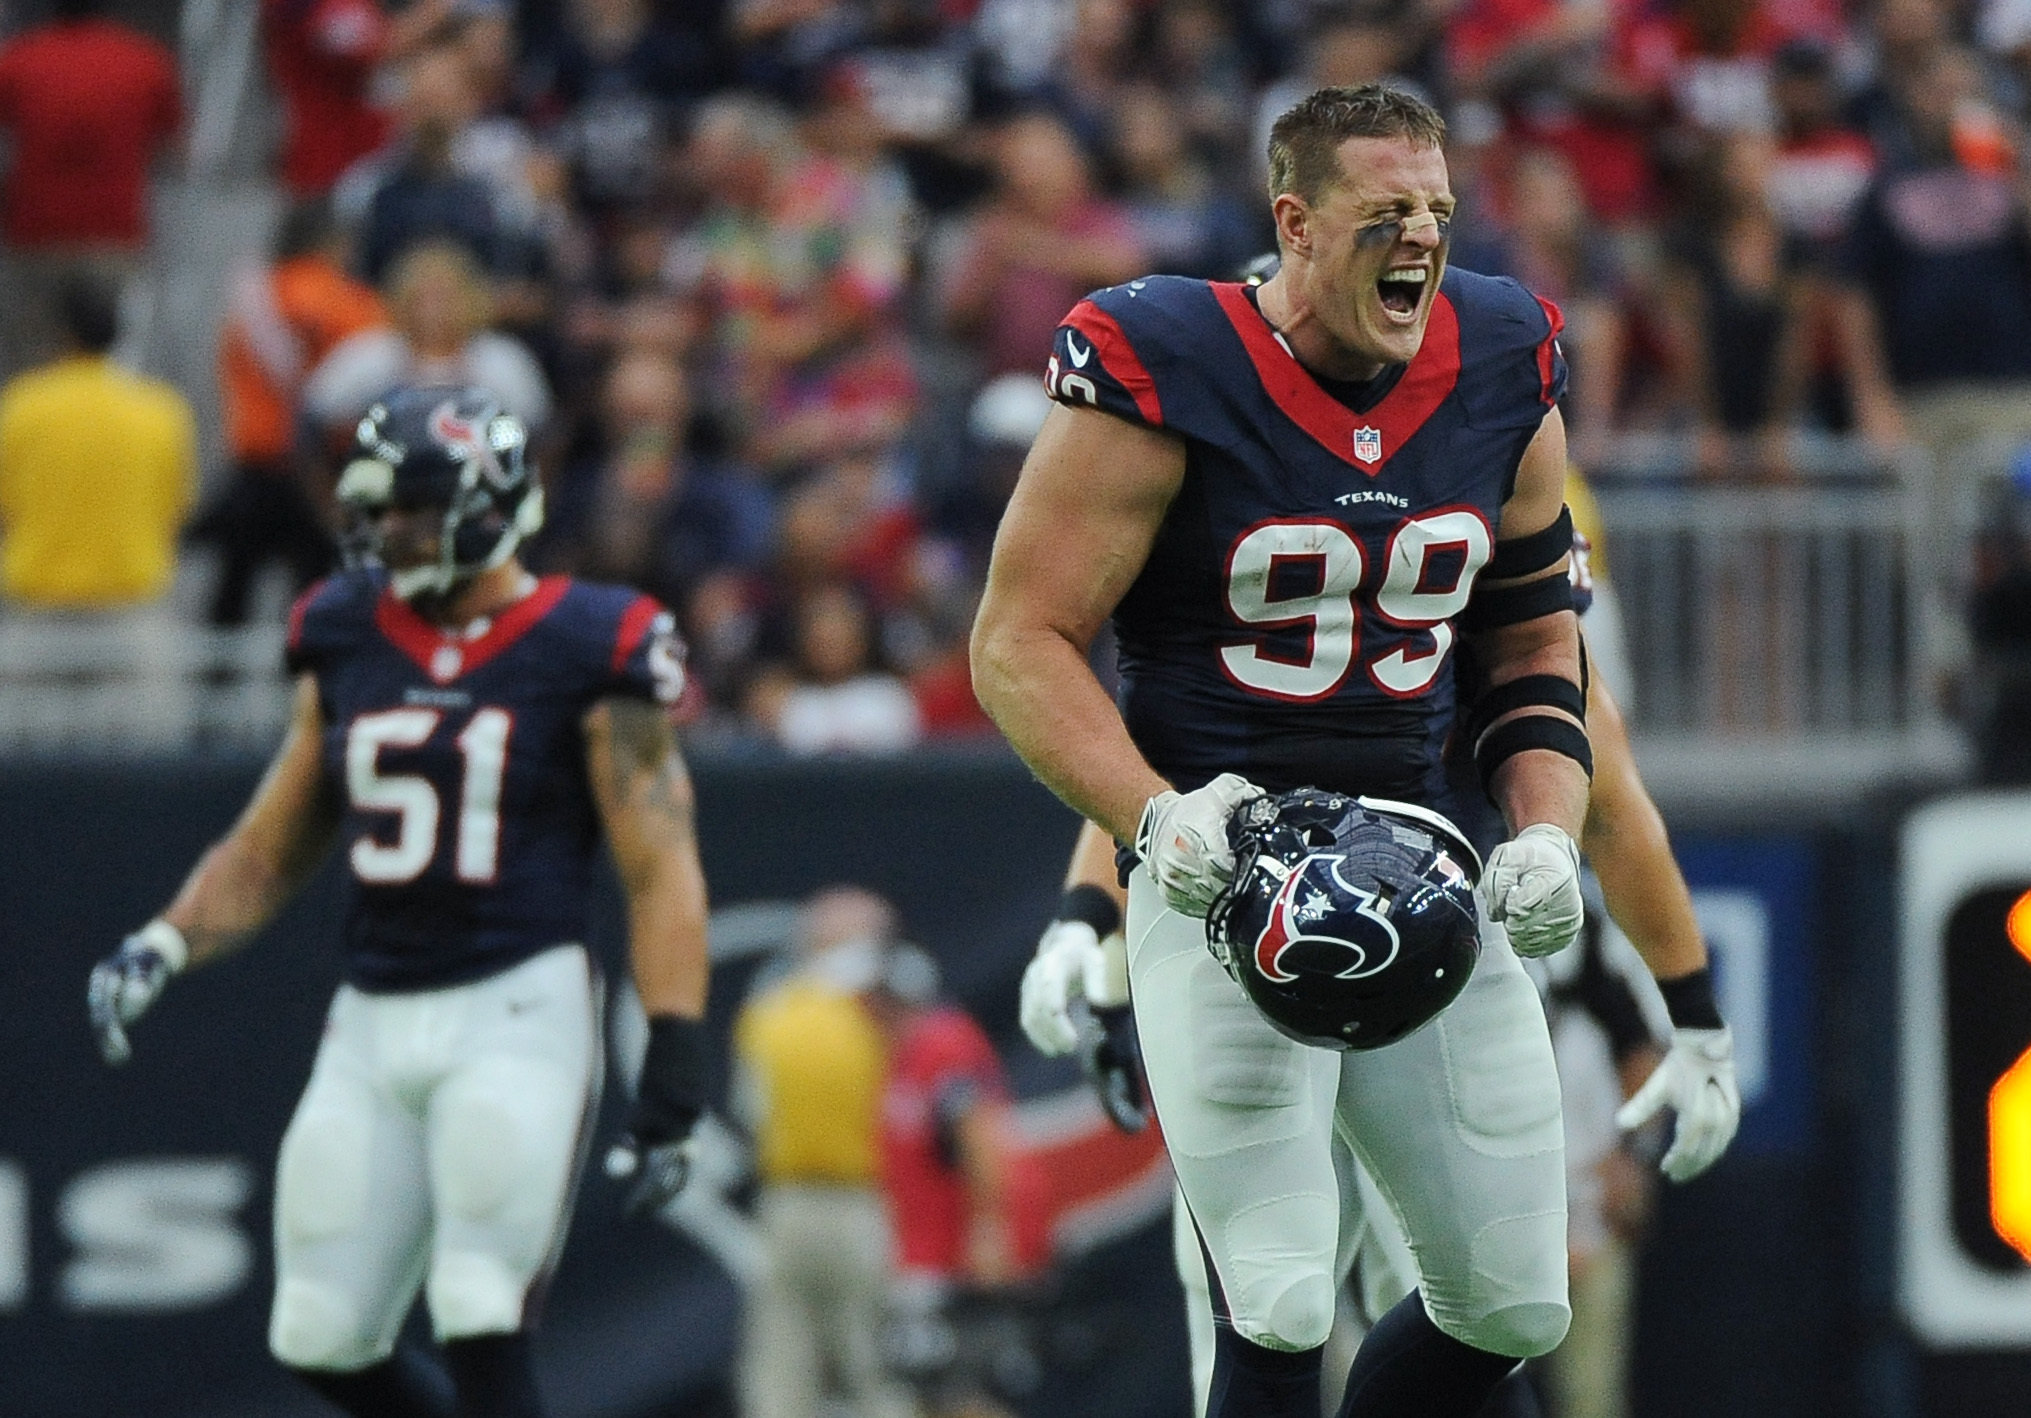 Houston Texans defensive end J.J. Watt (99) celebrates after he sacked Kansas City Chiefs quarterback Alex Smith during the first half of an NFL football game Sunday, Sept. 18, 2016, in Houston. (AP Photo/George Bridges)